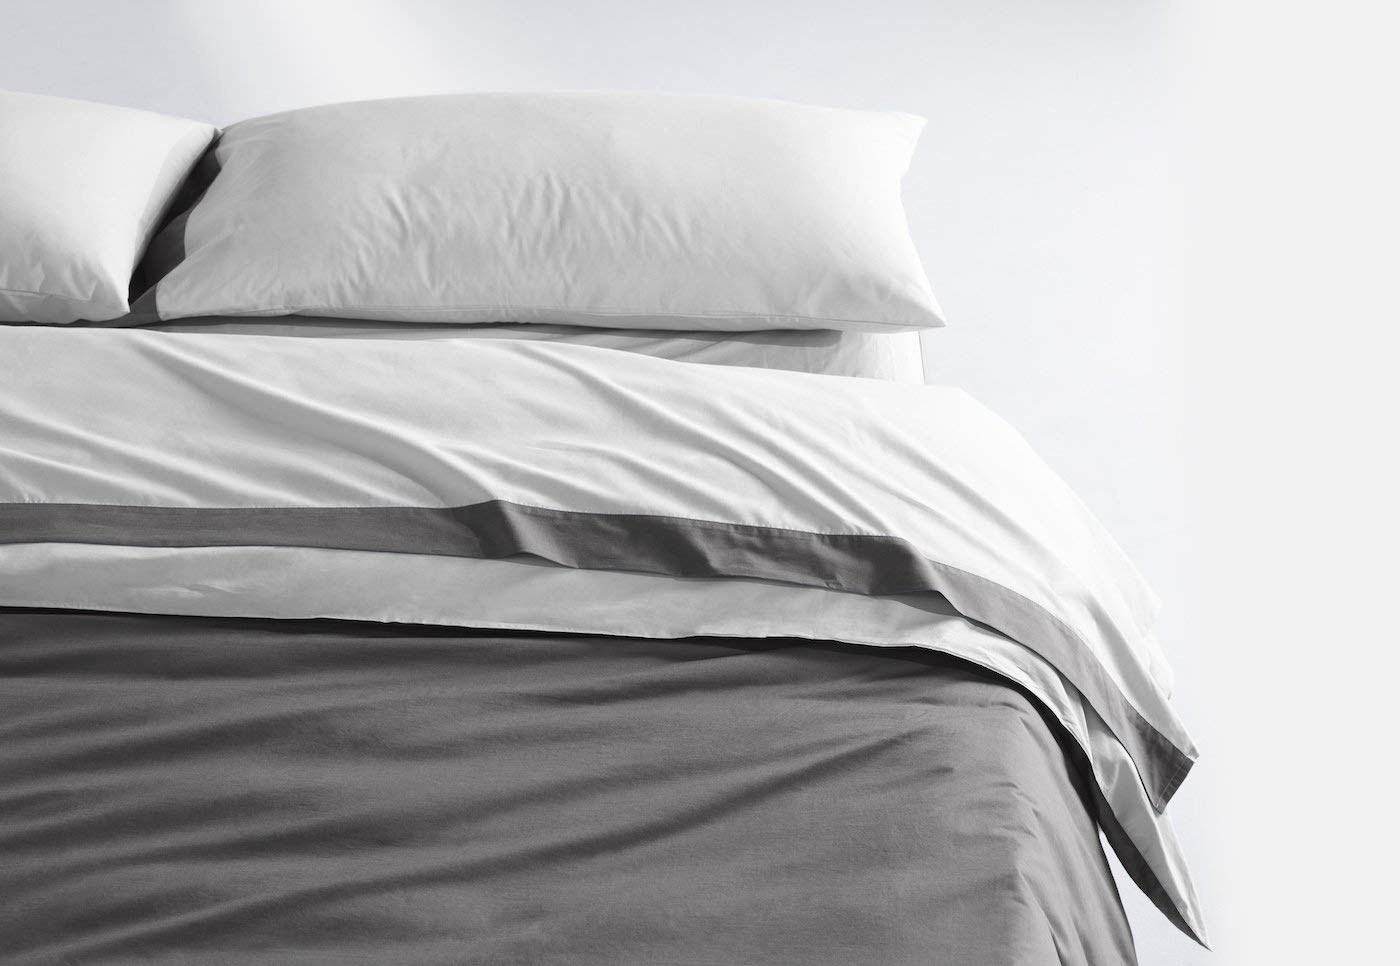 Best Percale Sheets - Top 10 Picks for 2019